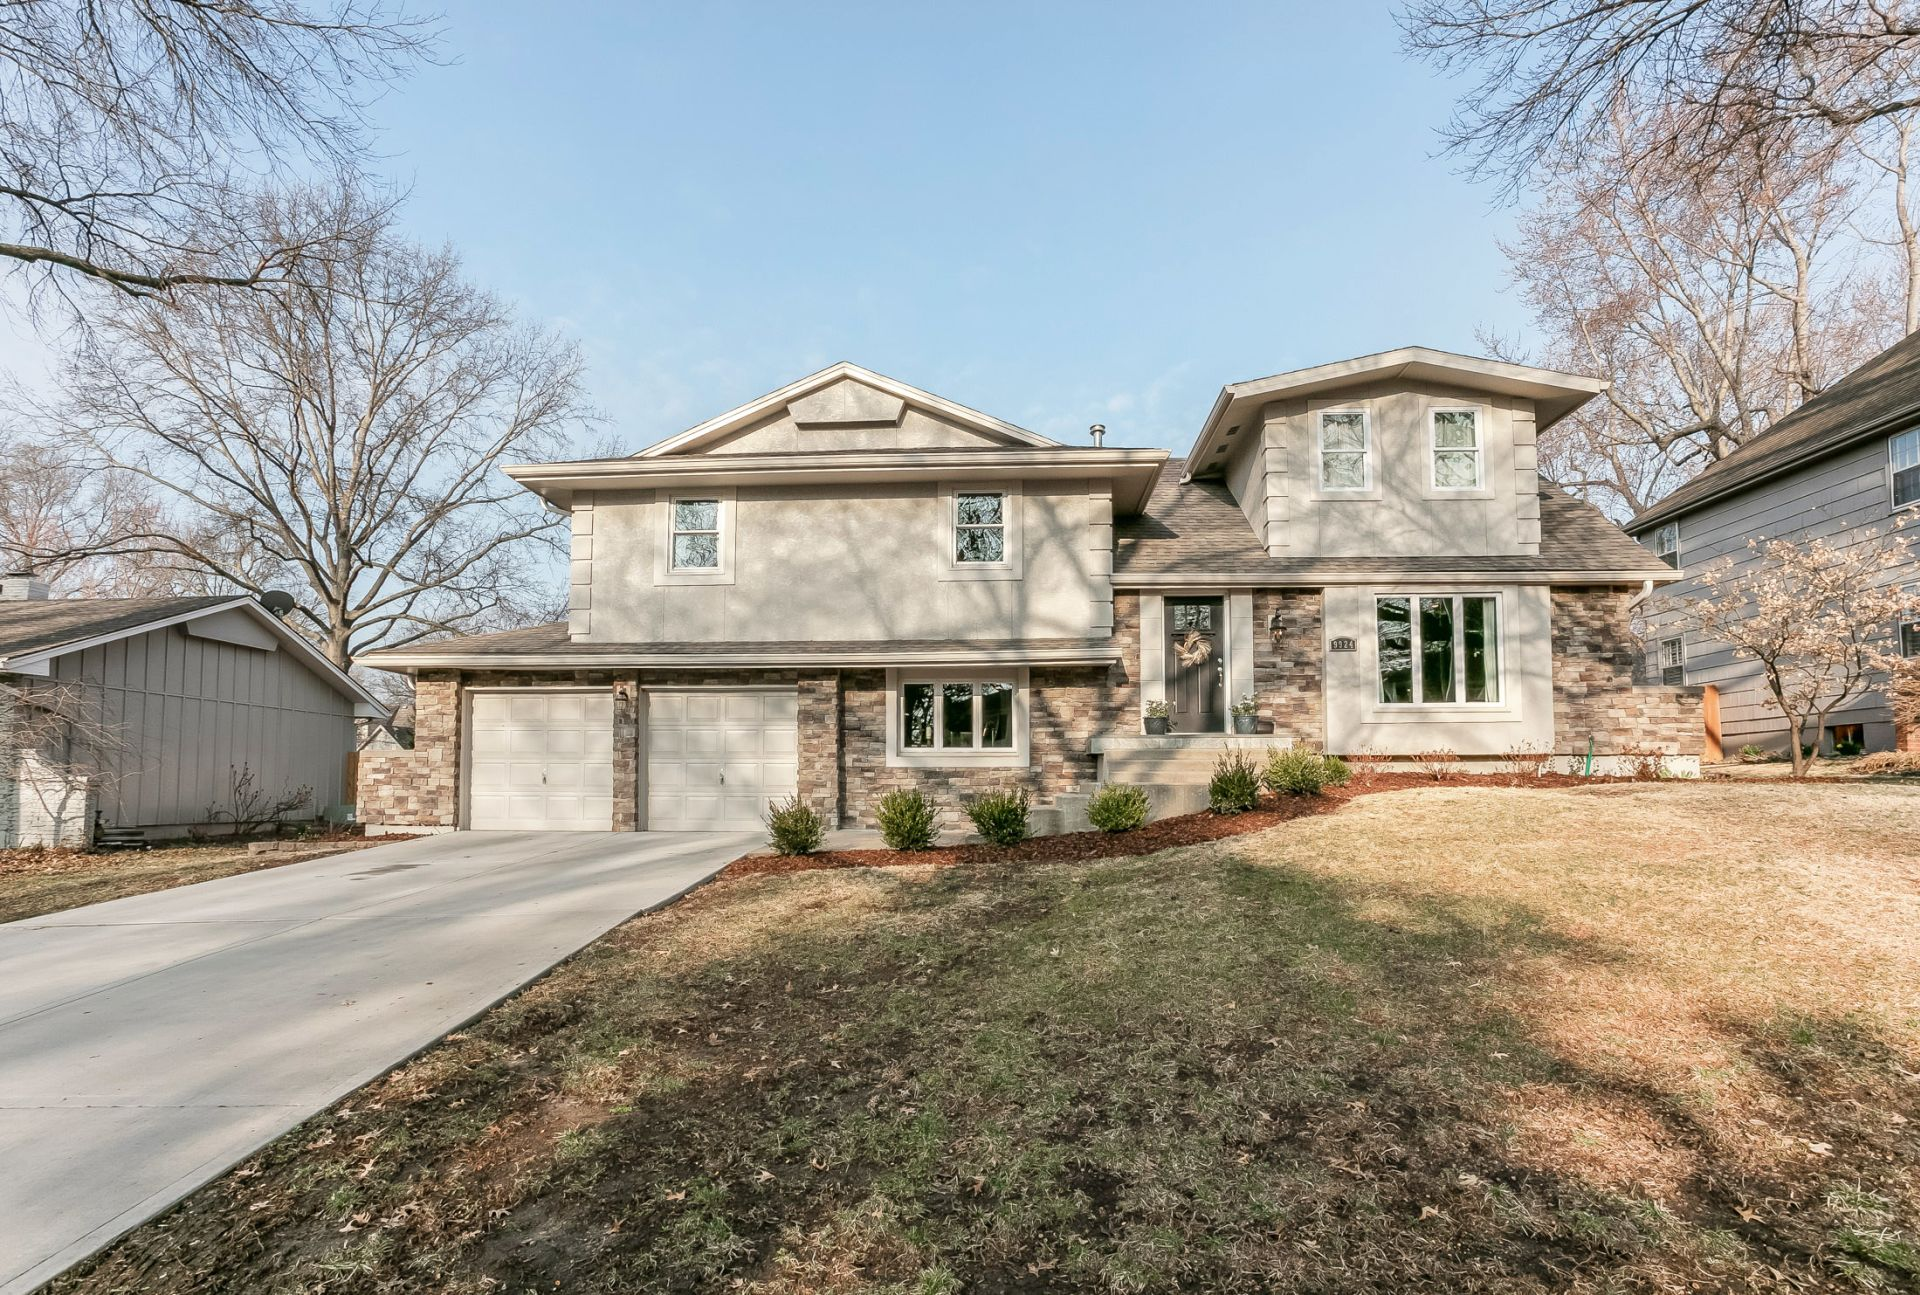 JUST LISTED in Overland Park with 2 OPEN HOUSES!